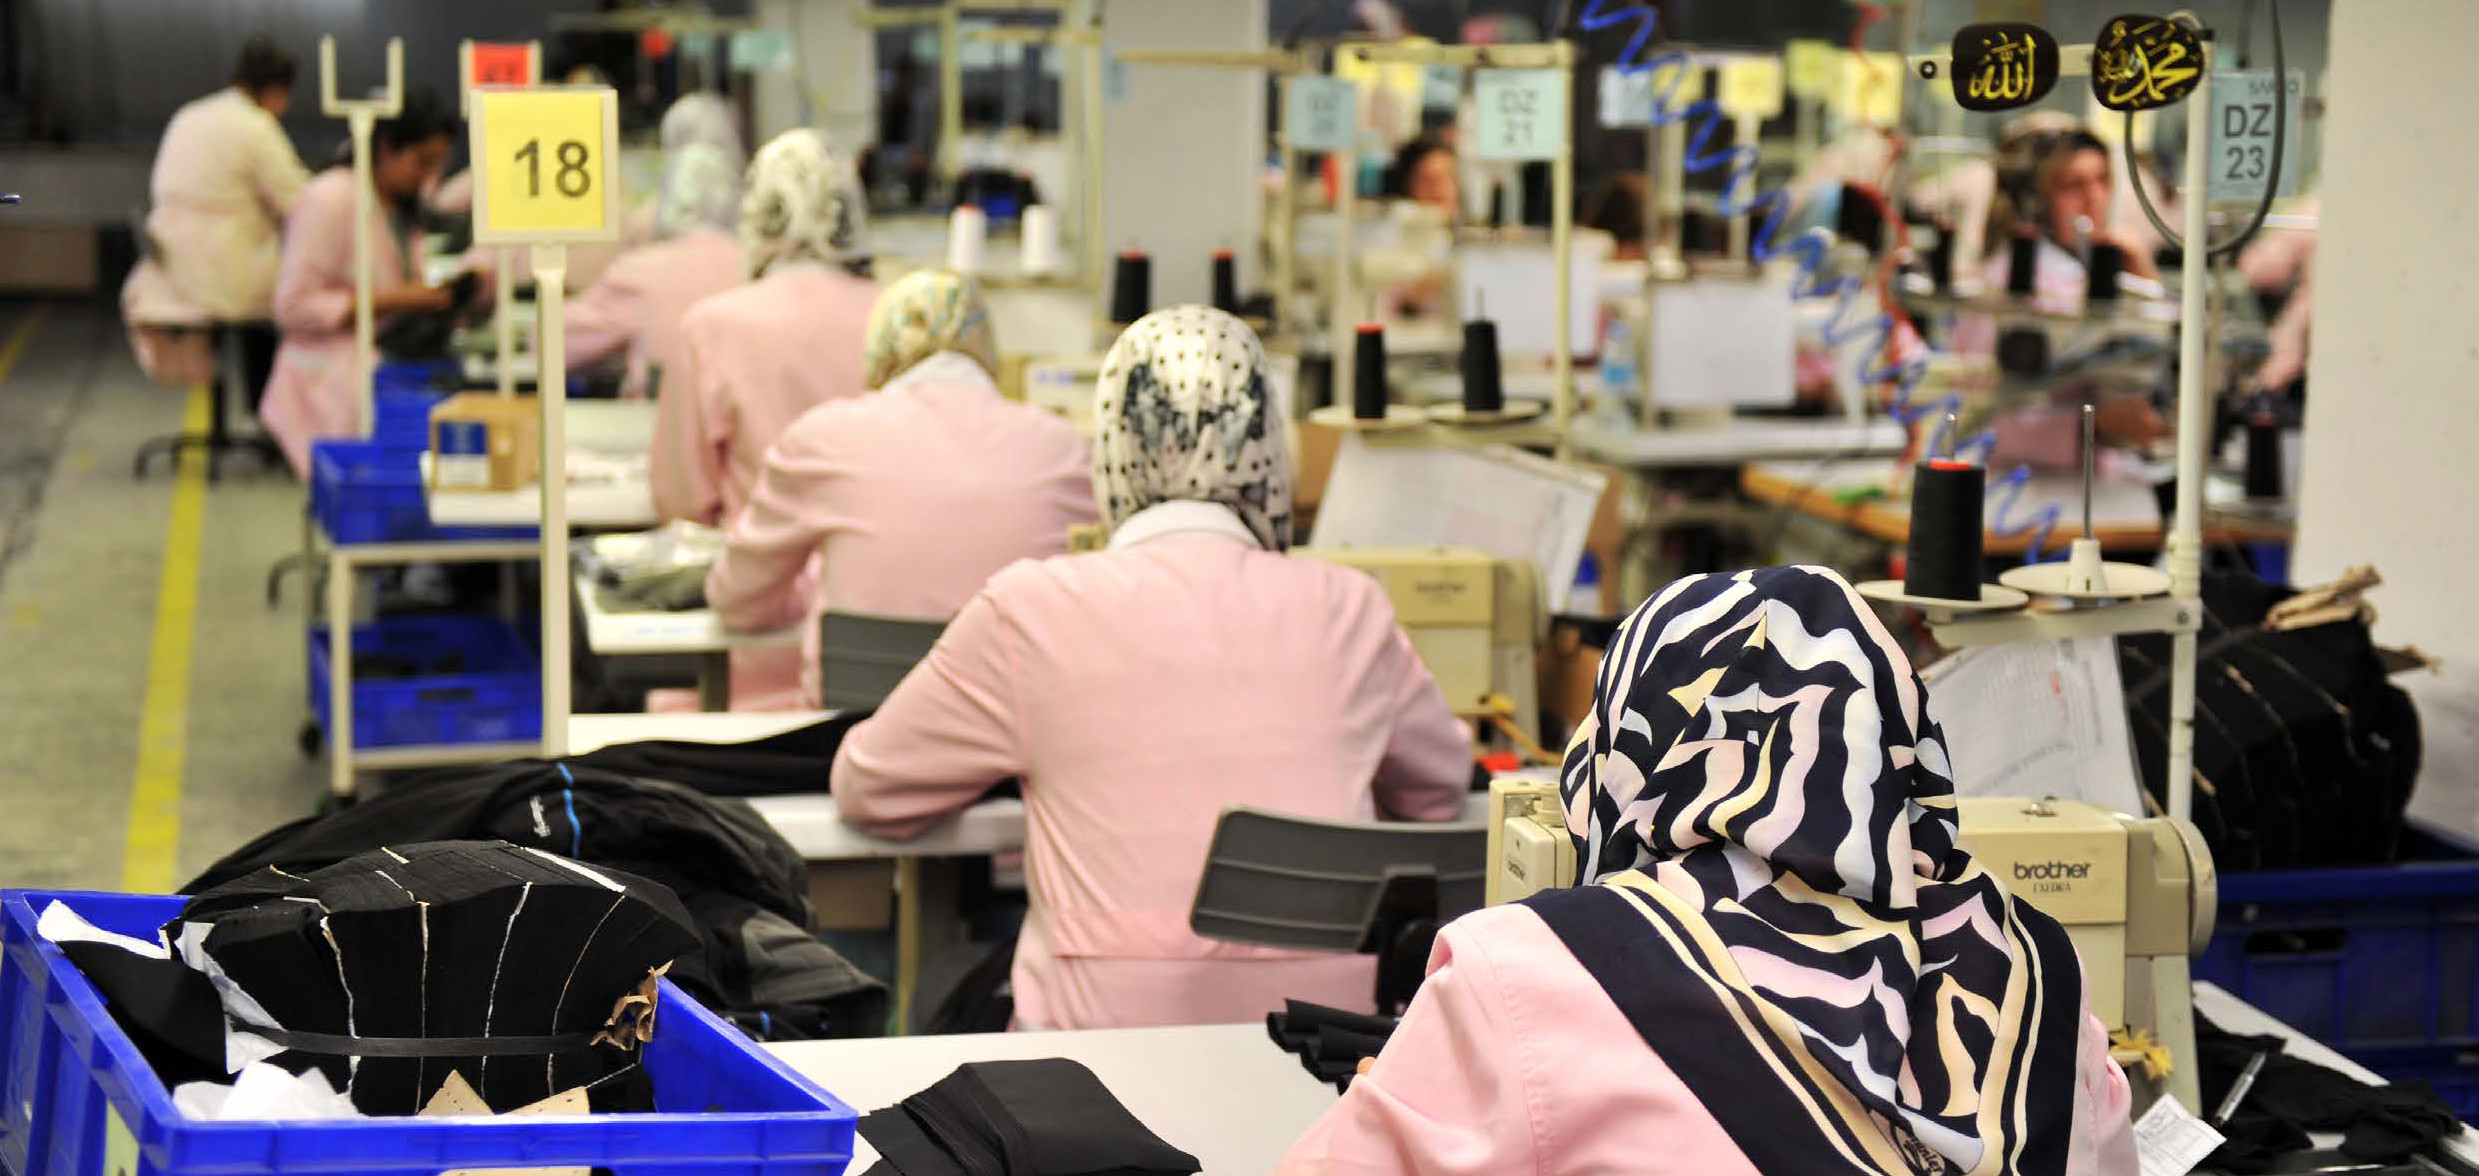 New report shows 650,000 Syrian refugees in Turkish factories